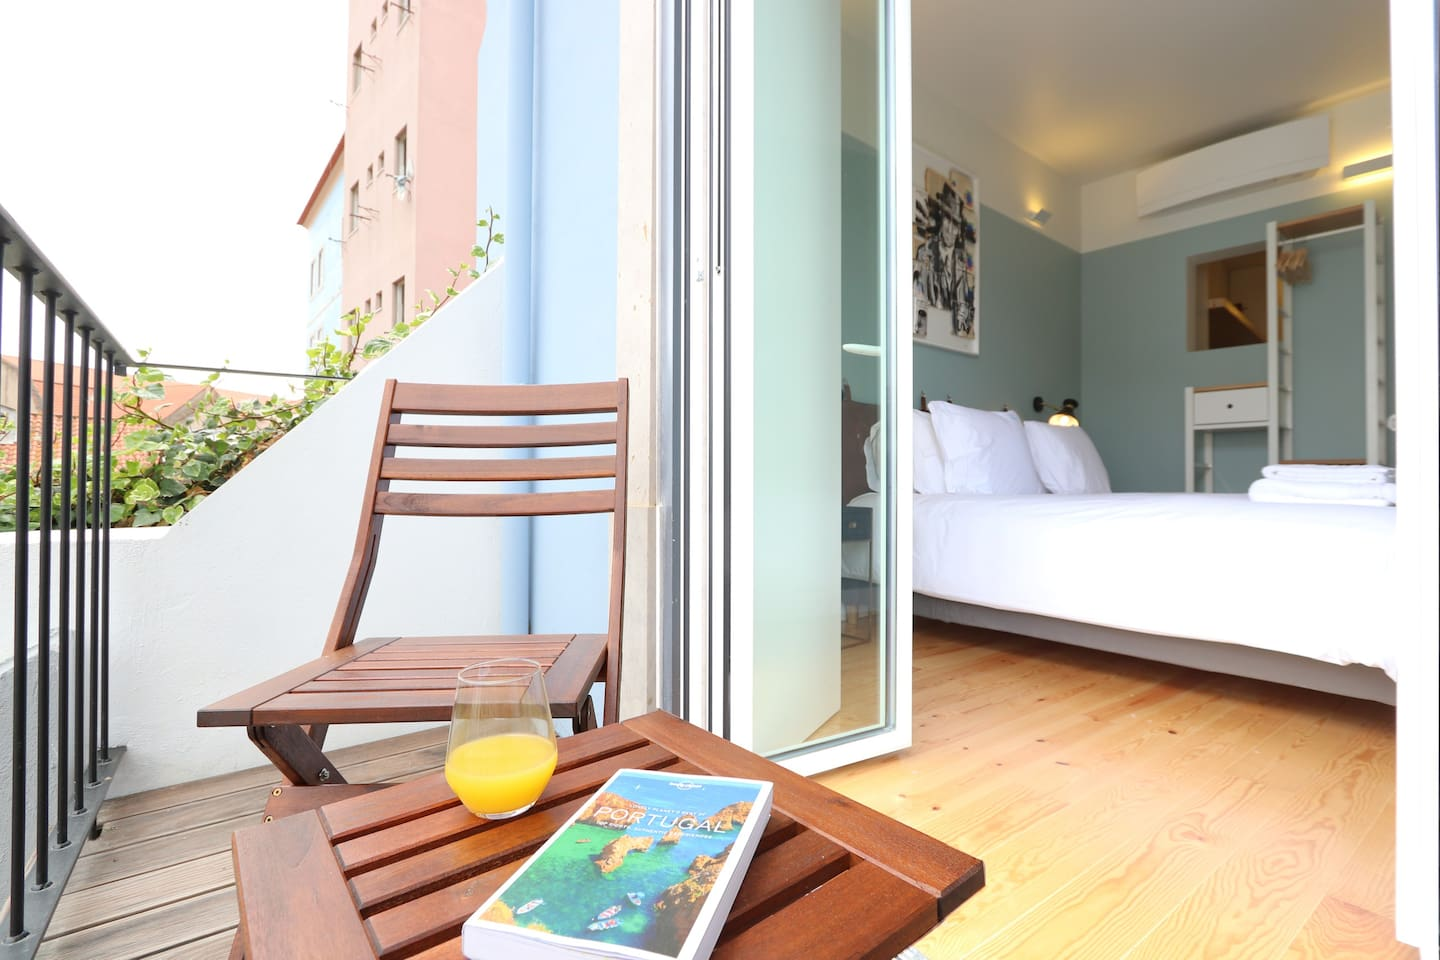 Your vacation dream fulfiled: balcony, view to the Castle and the pool with a comfortable bed